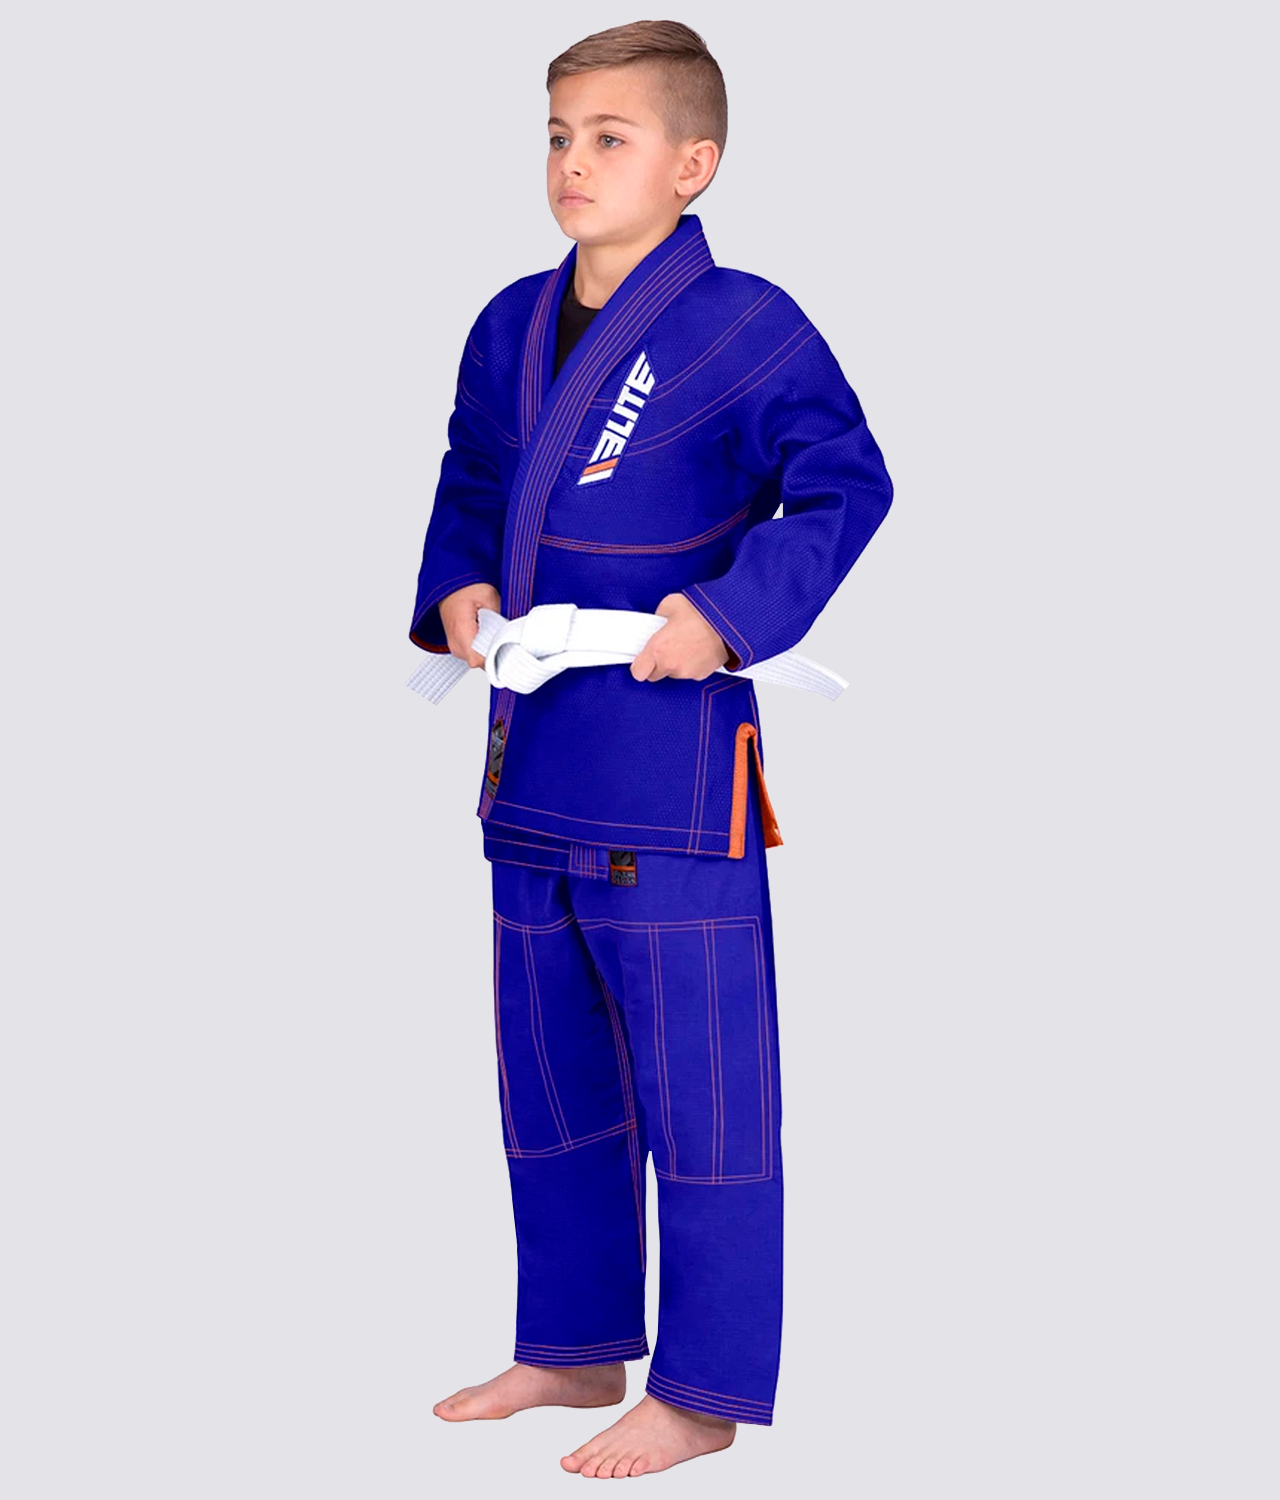 Elite Sports Ultra Light Preshrunk Anti-Odor Blue Kids Brazilian Jiu Jitsu BJJ Gi With Free White Belt